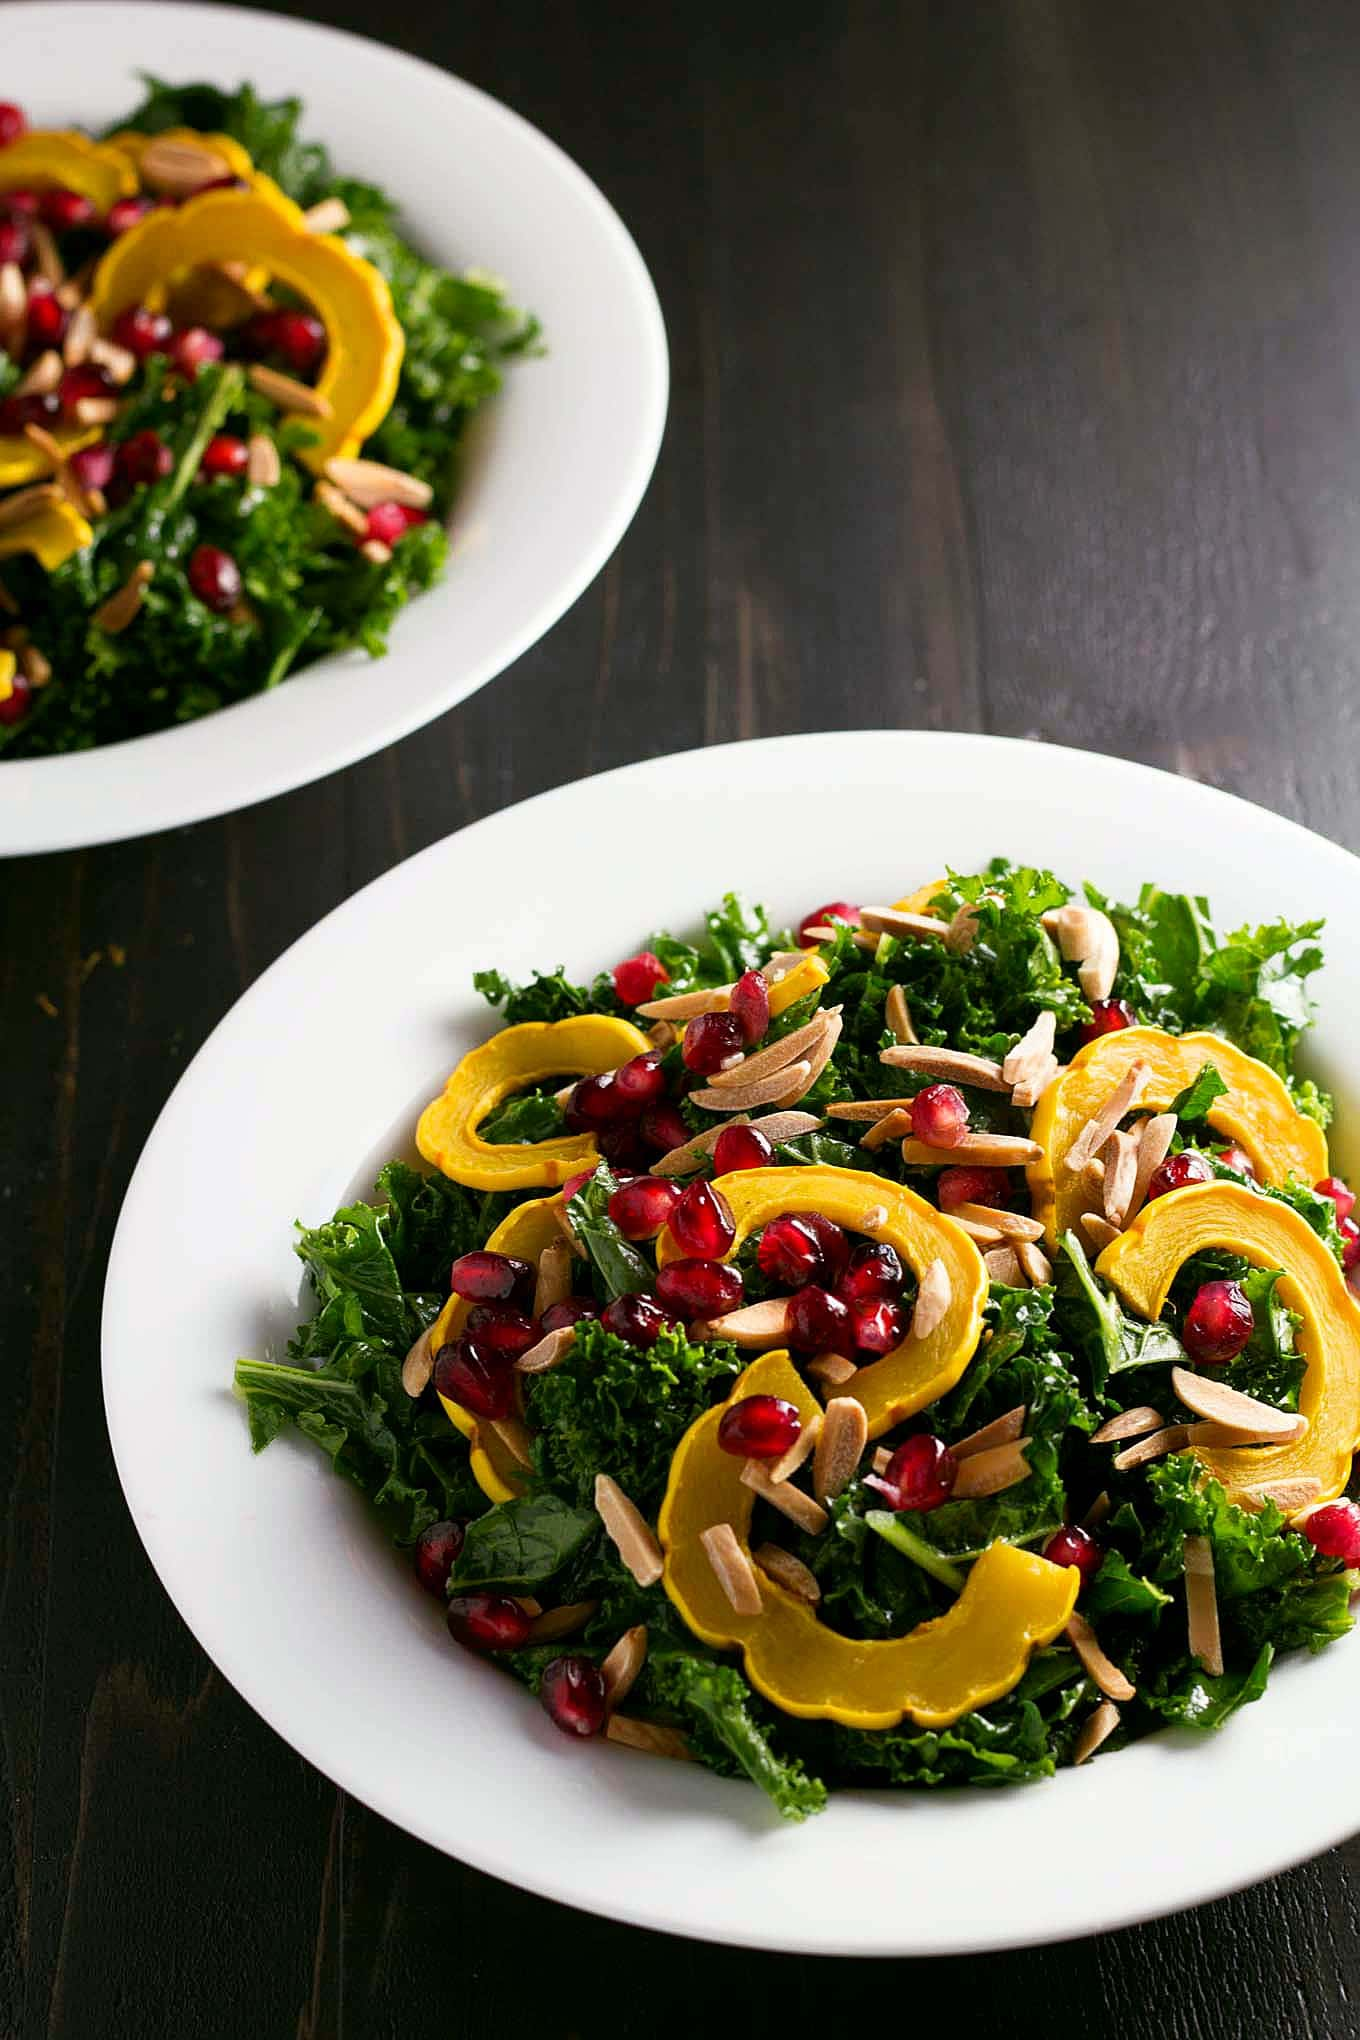 Winter Kale Salad with Orange, Delicata, and Pomegranate